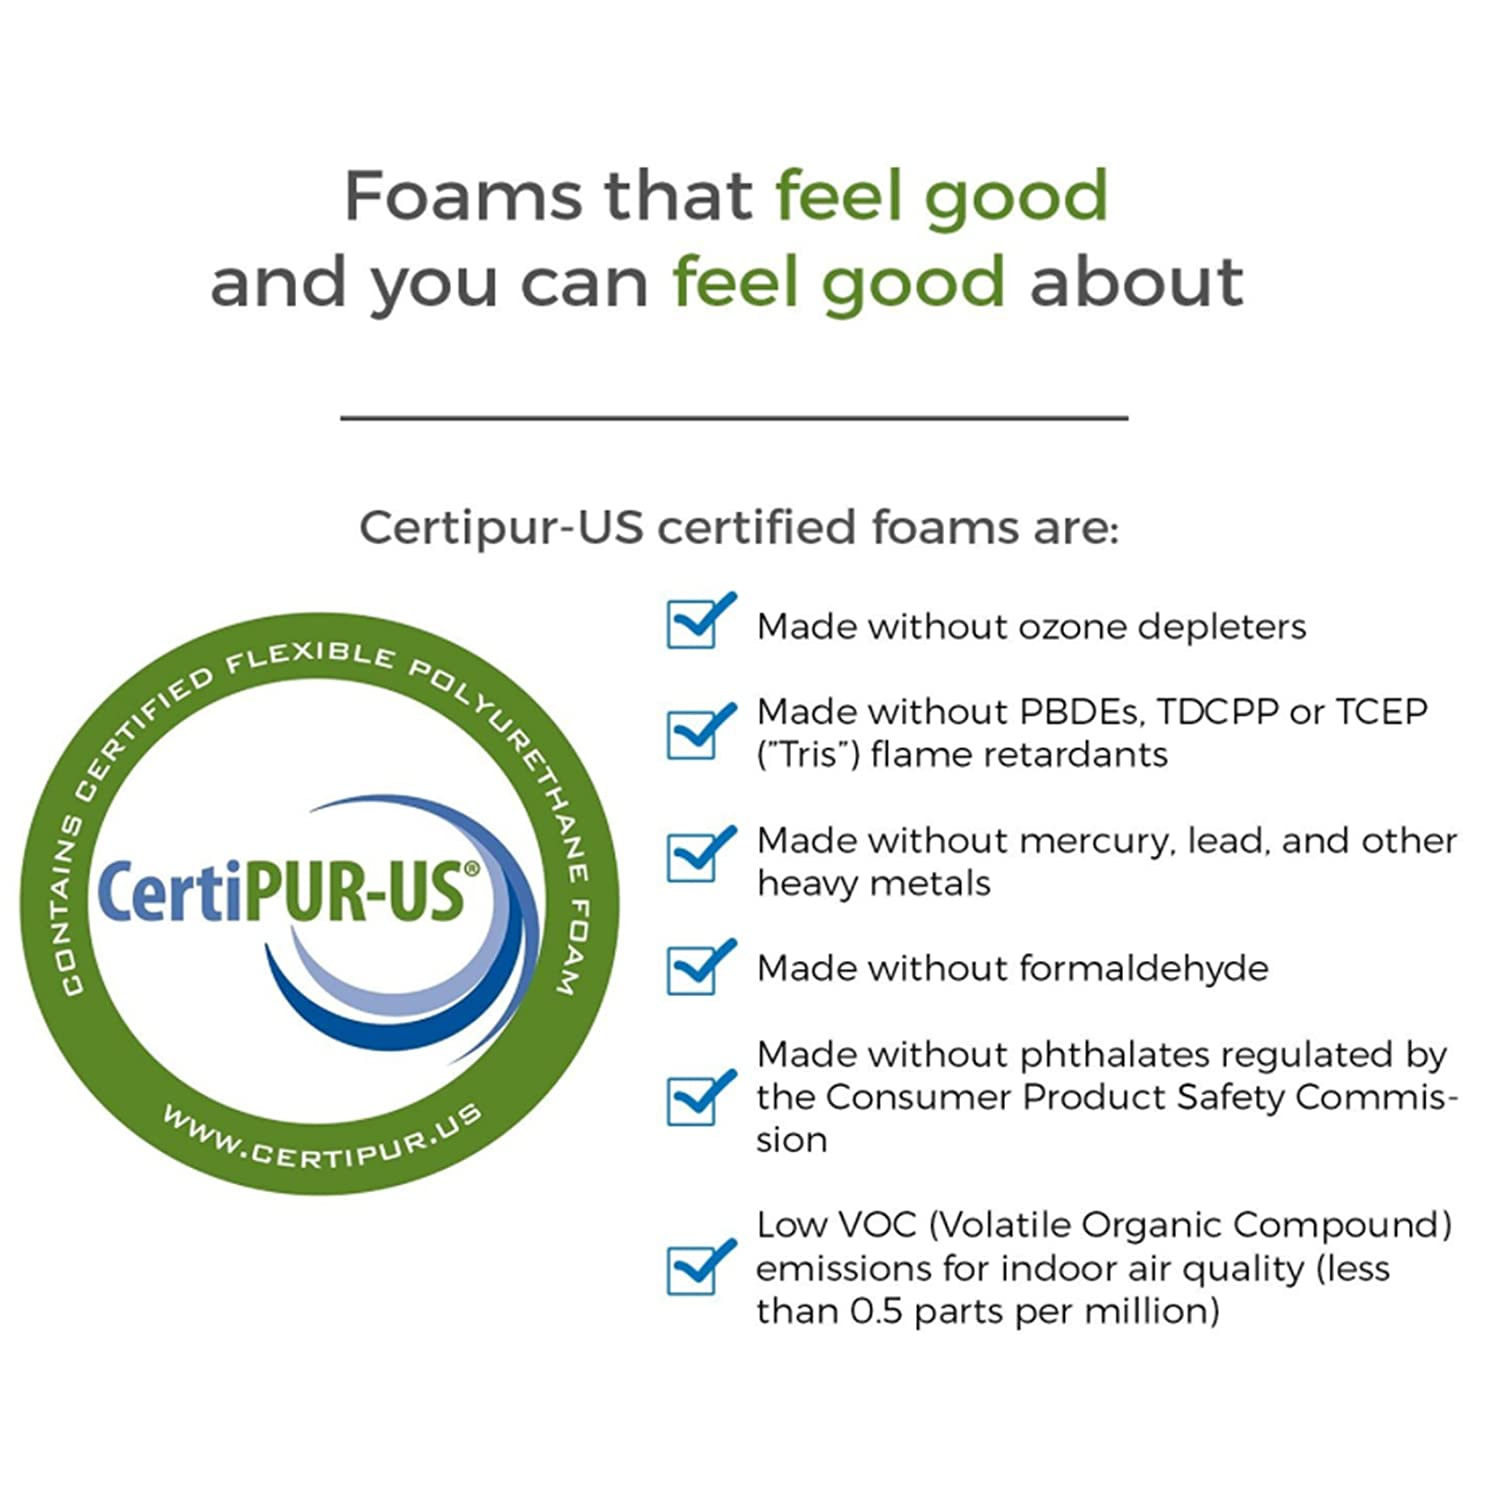 The product of Live and Sleep is certified by CertiPUR-US